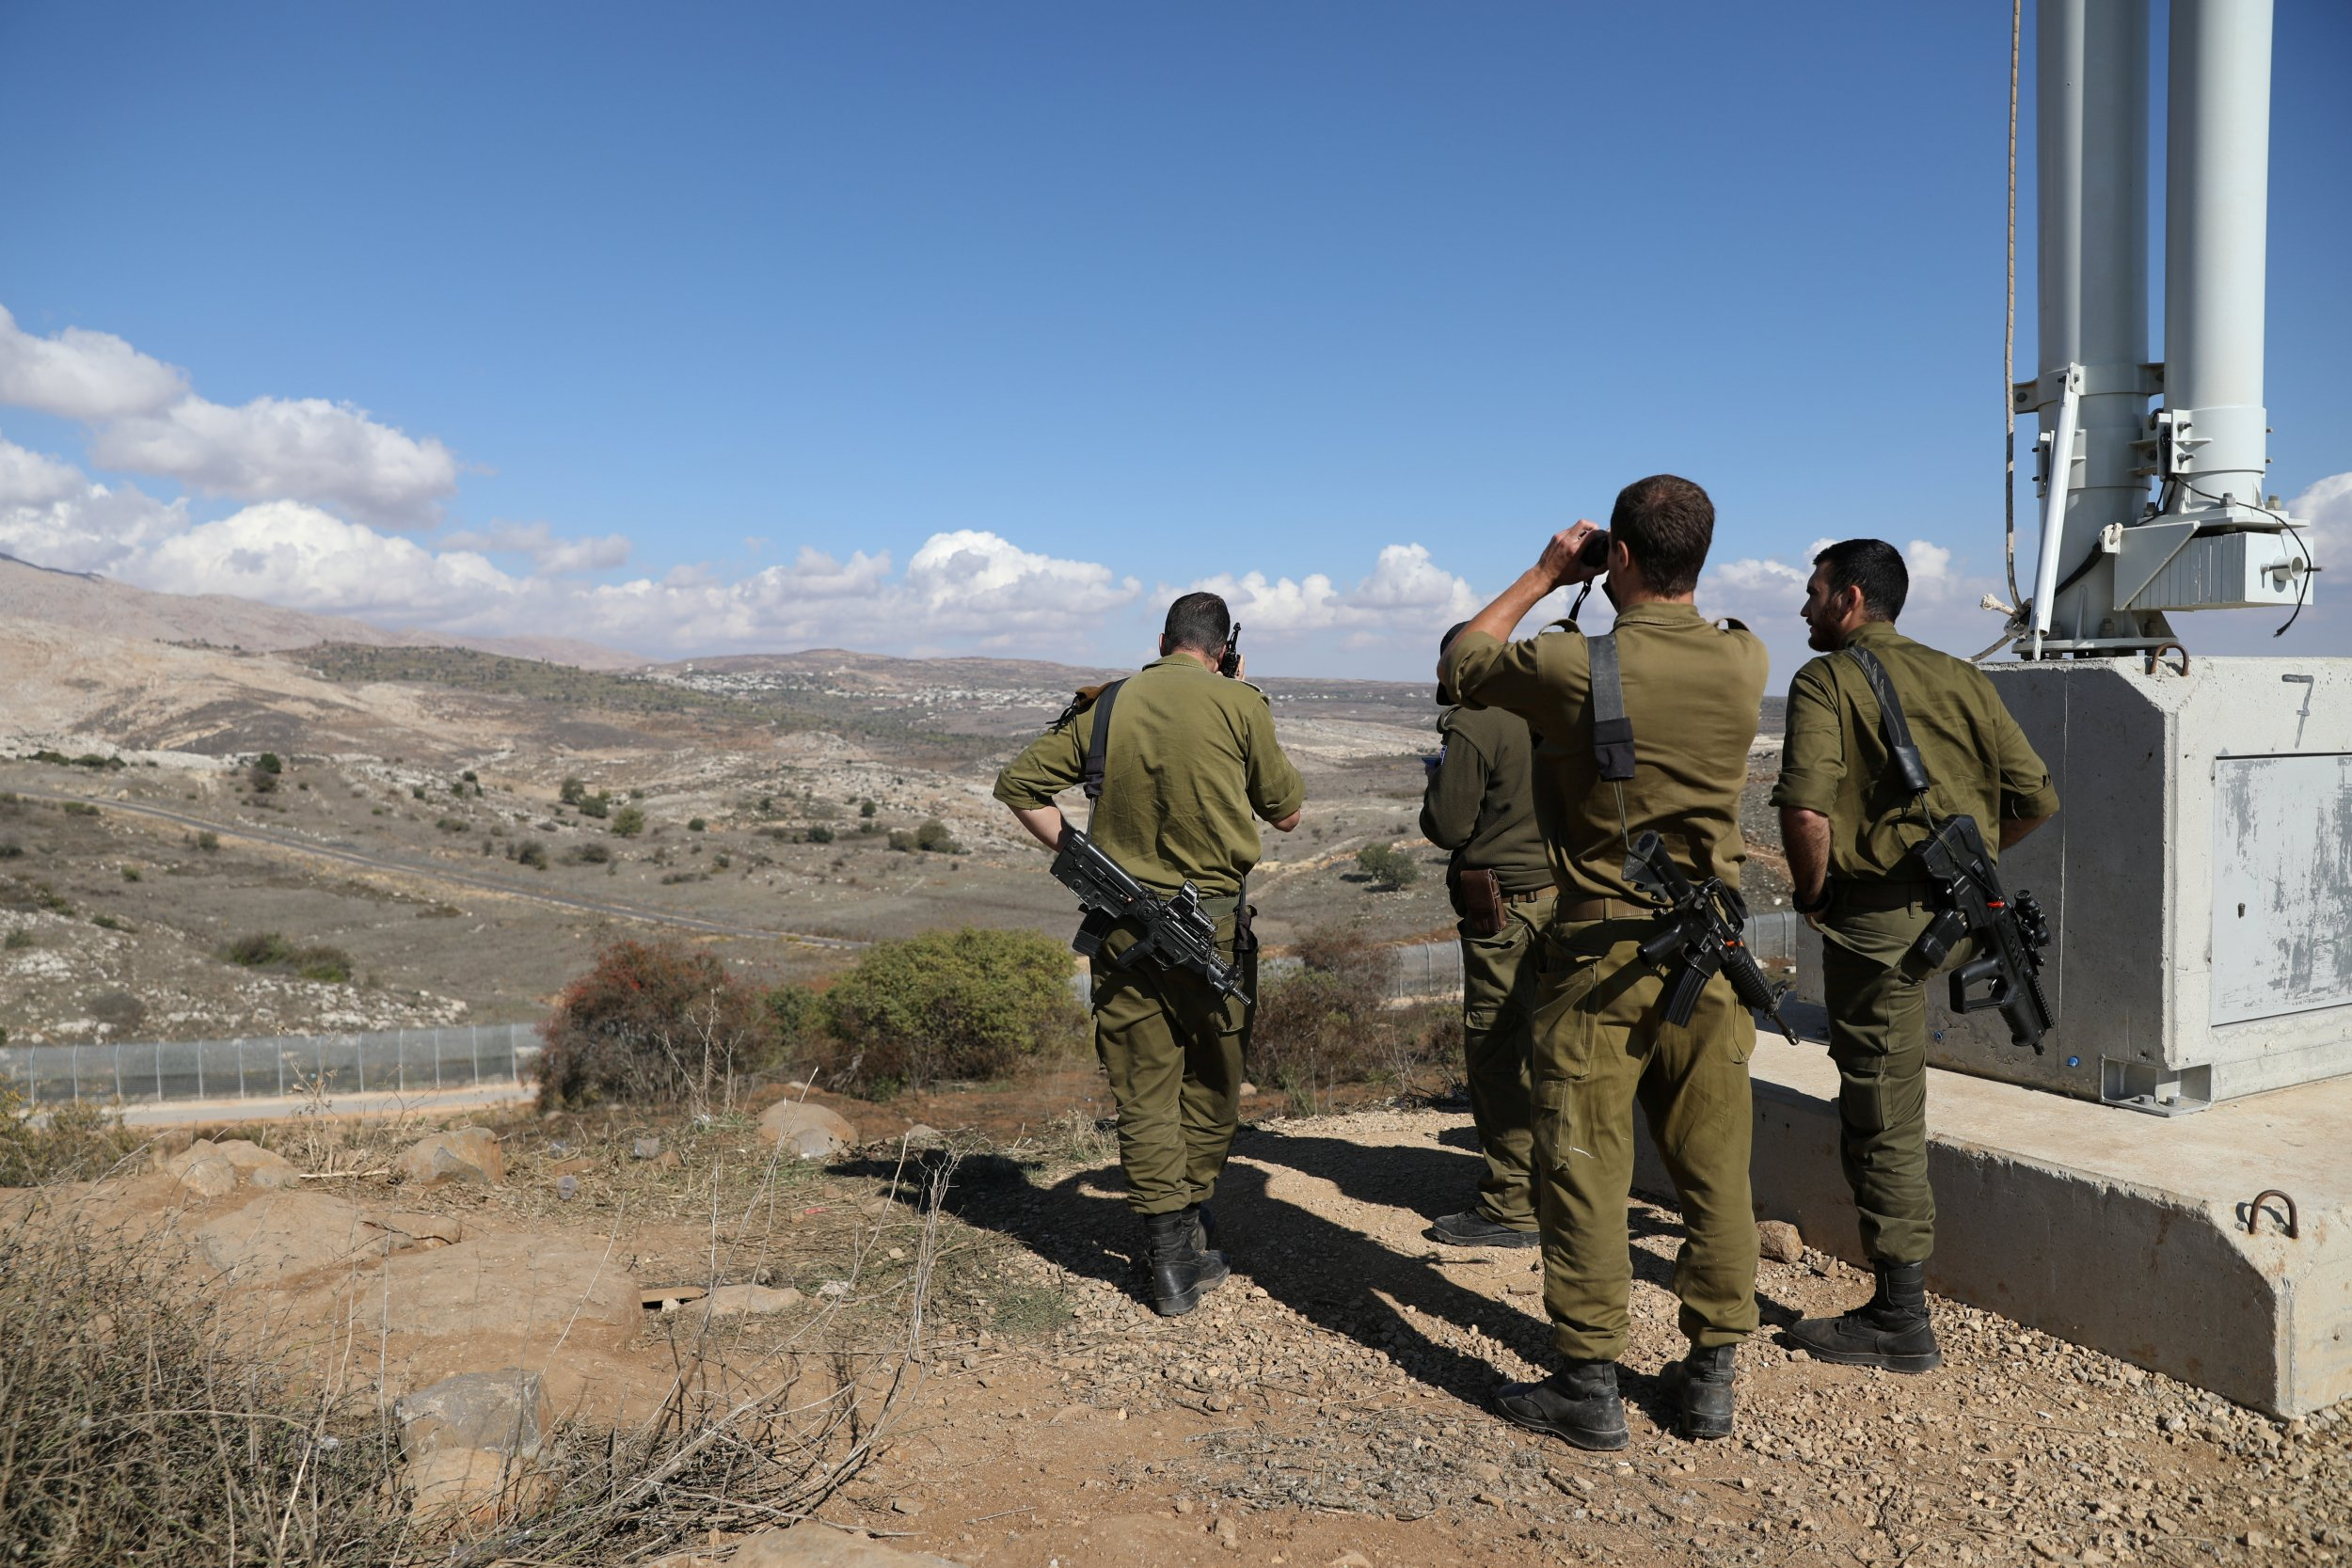 How Does Israel's Military Compare to Iran?